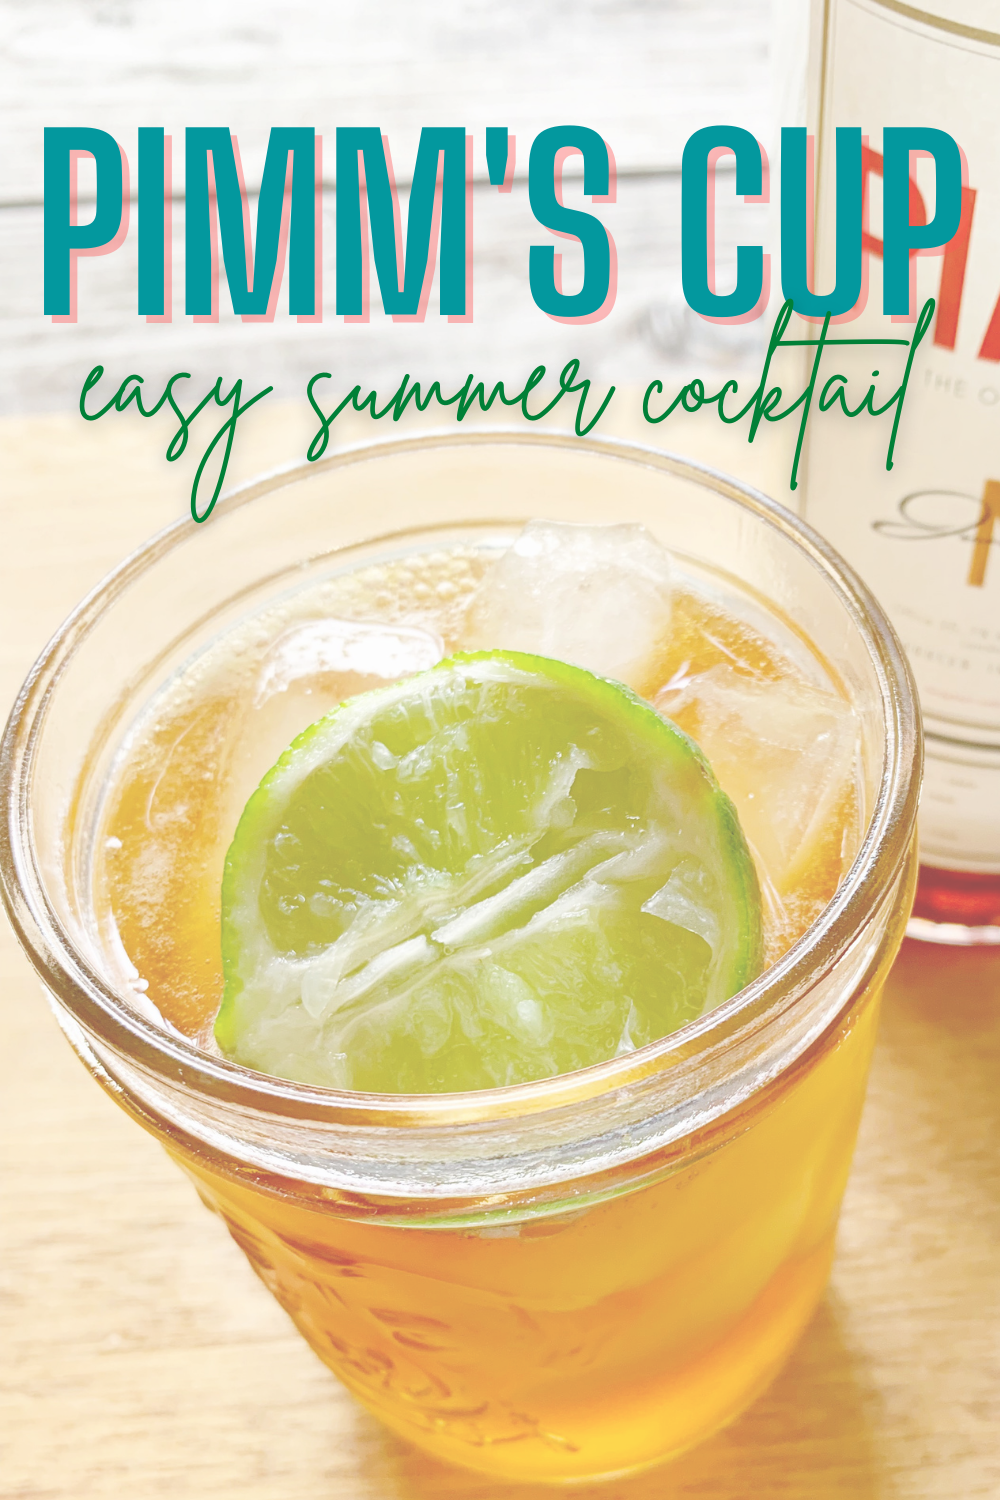 Pimm's Cup Cocktail - Short on time? Try this simple recipe for a Pimm's Cup Cocktail that is equal parts refreshing and strong!   Pimms Cup - Pimm's Cup Recipe - Pimms Cup Recipe - What is Pimm's Cup